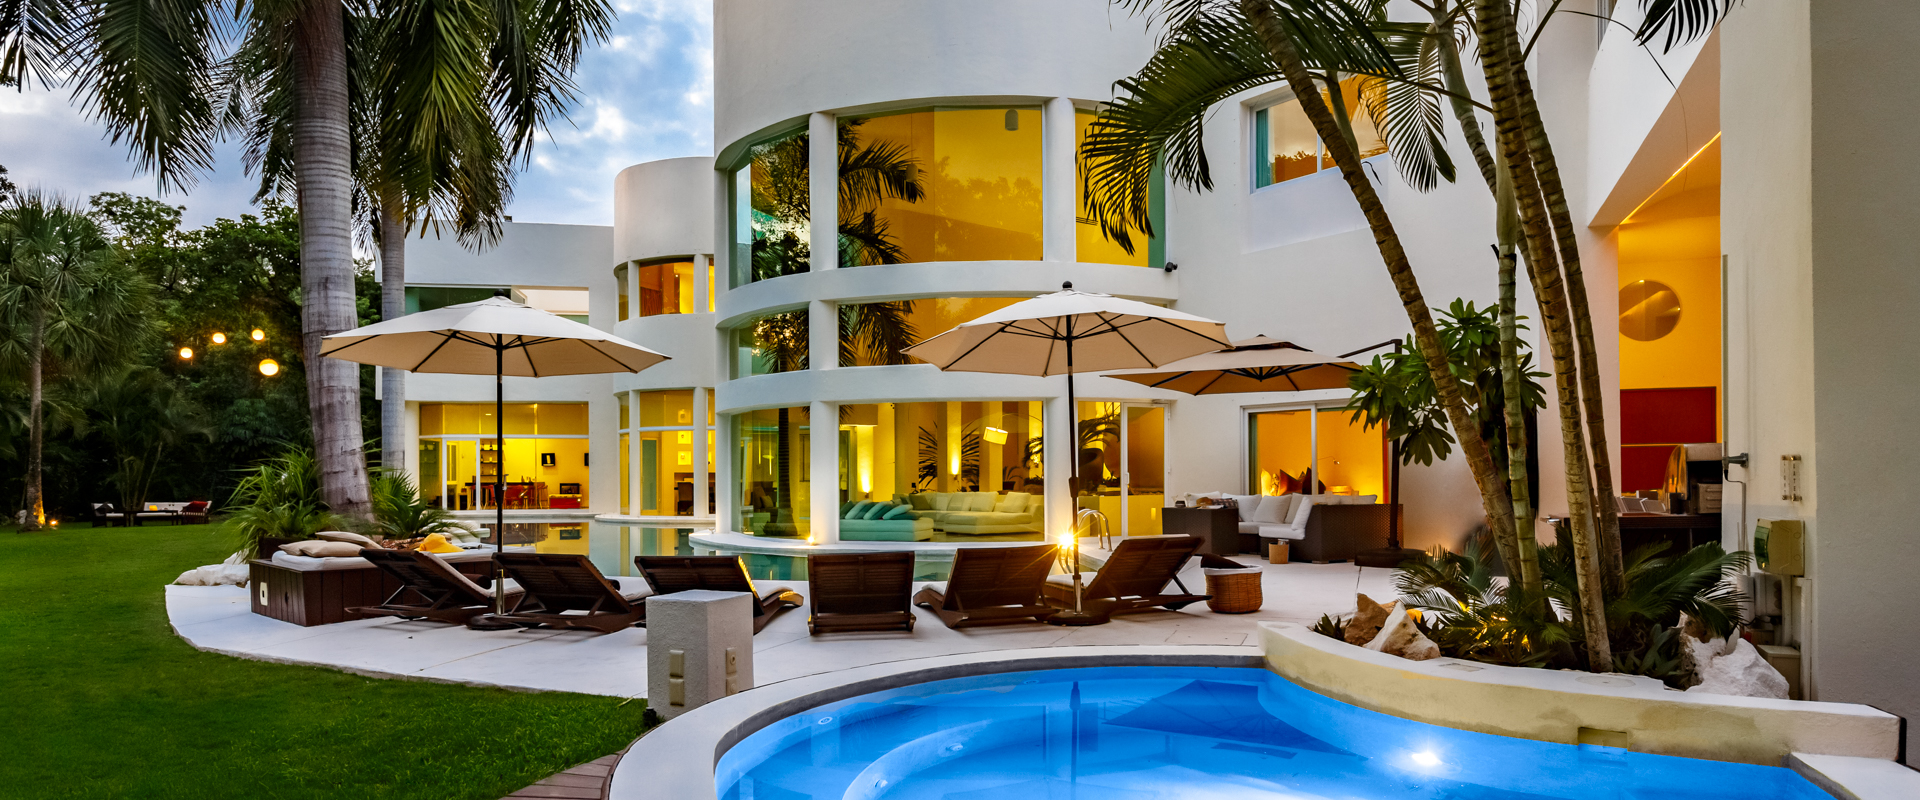 Rent Your Villa For Events And Photo Shoots